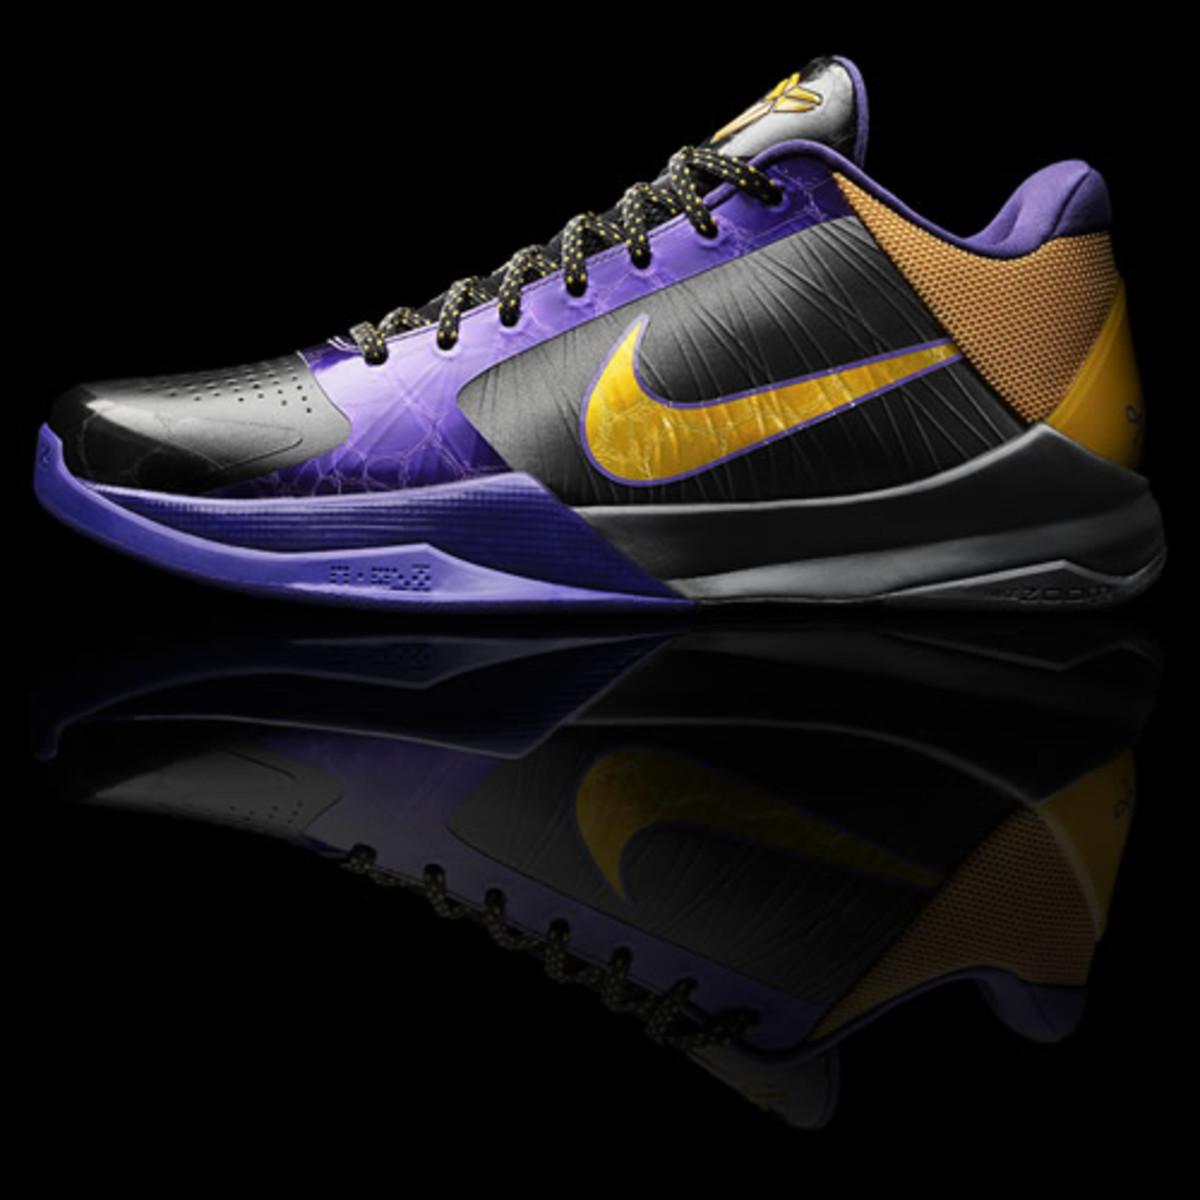 info for 48929 85f01 Riding high off his recent buzzer-beating win over the Miami Heat, Kobe has  taken this time between games to unveil his latest sneaker, the Zoom Kobe V.  ...